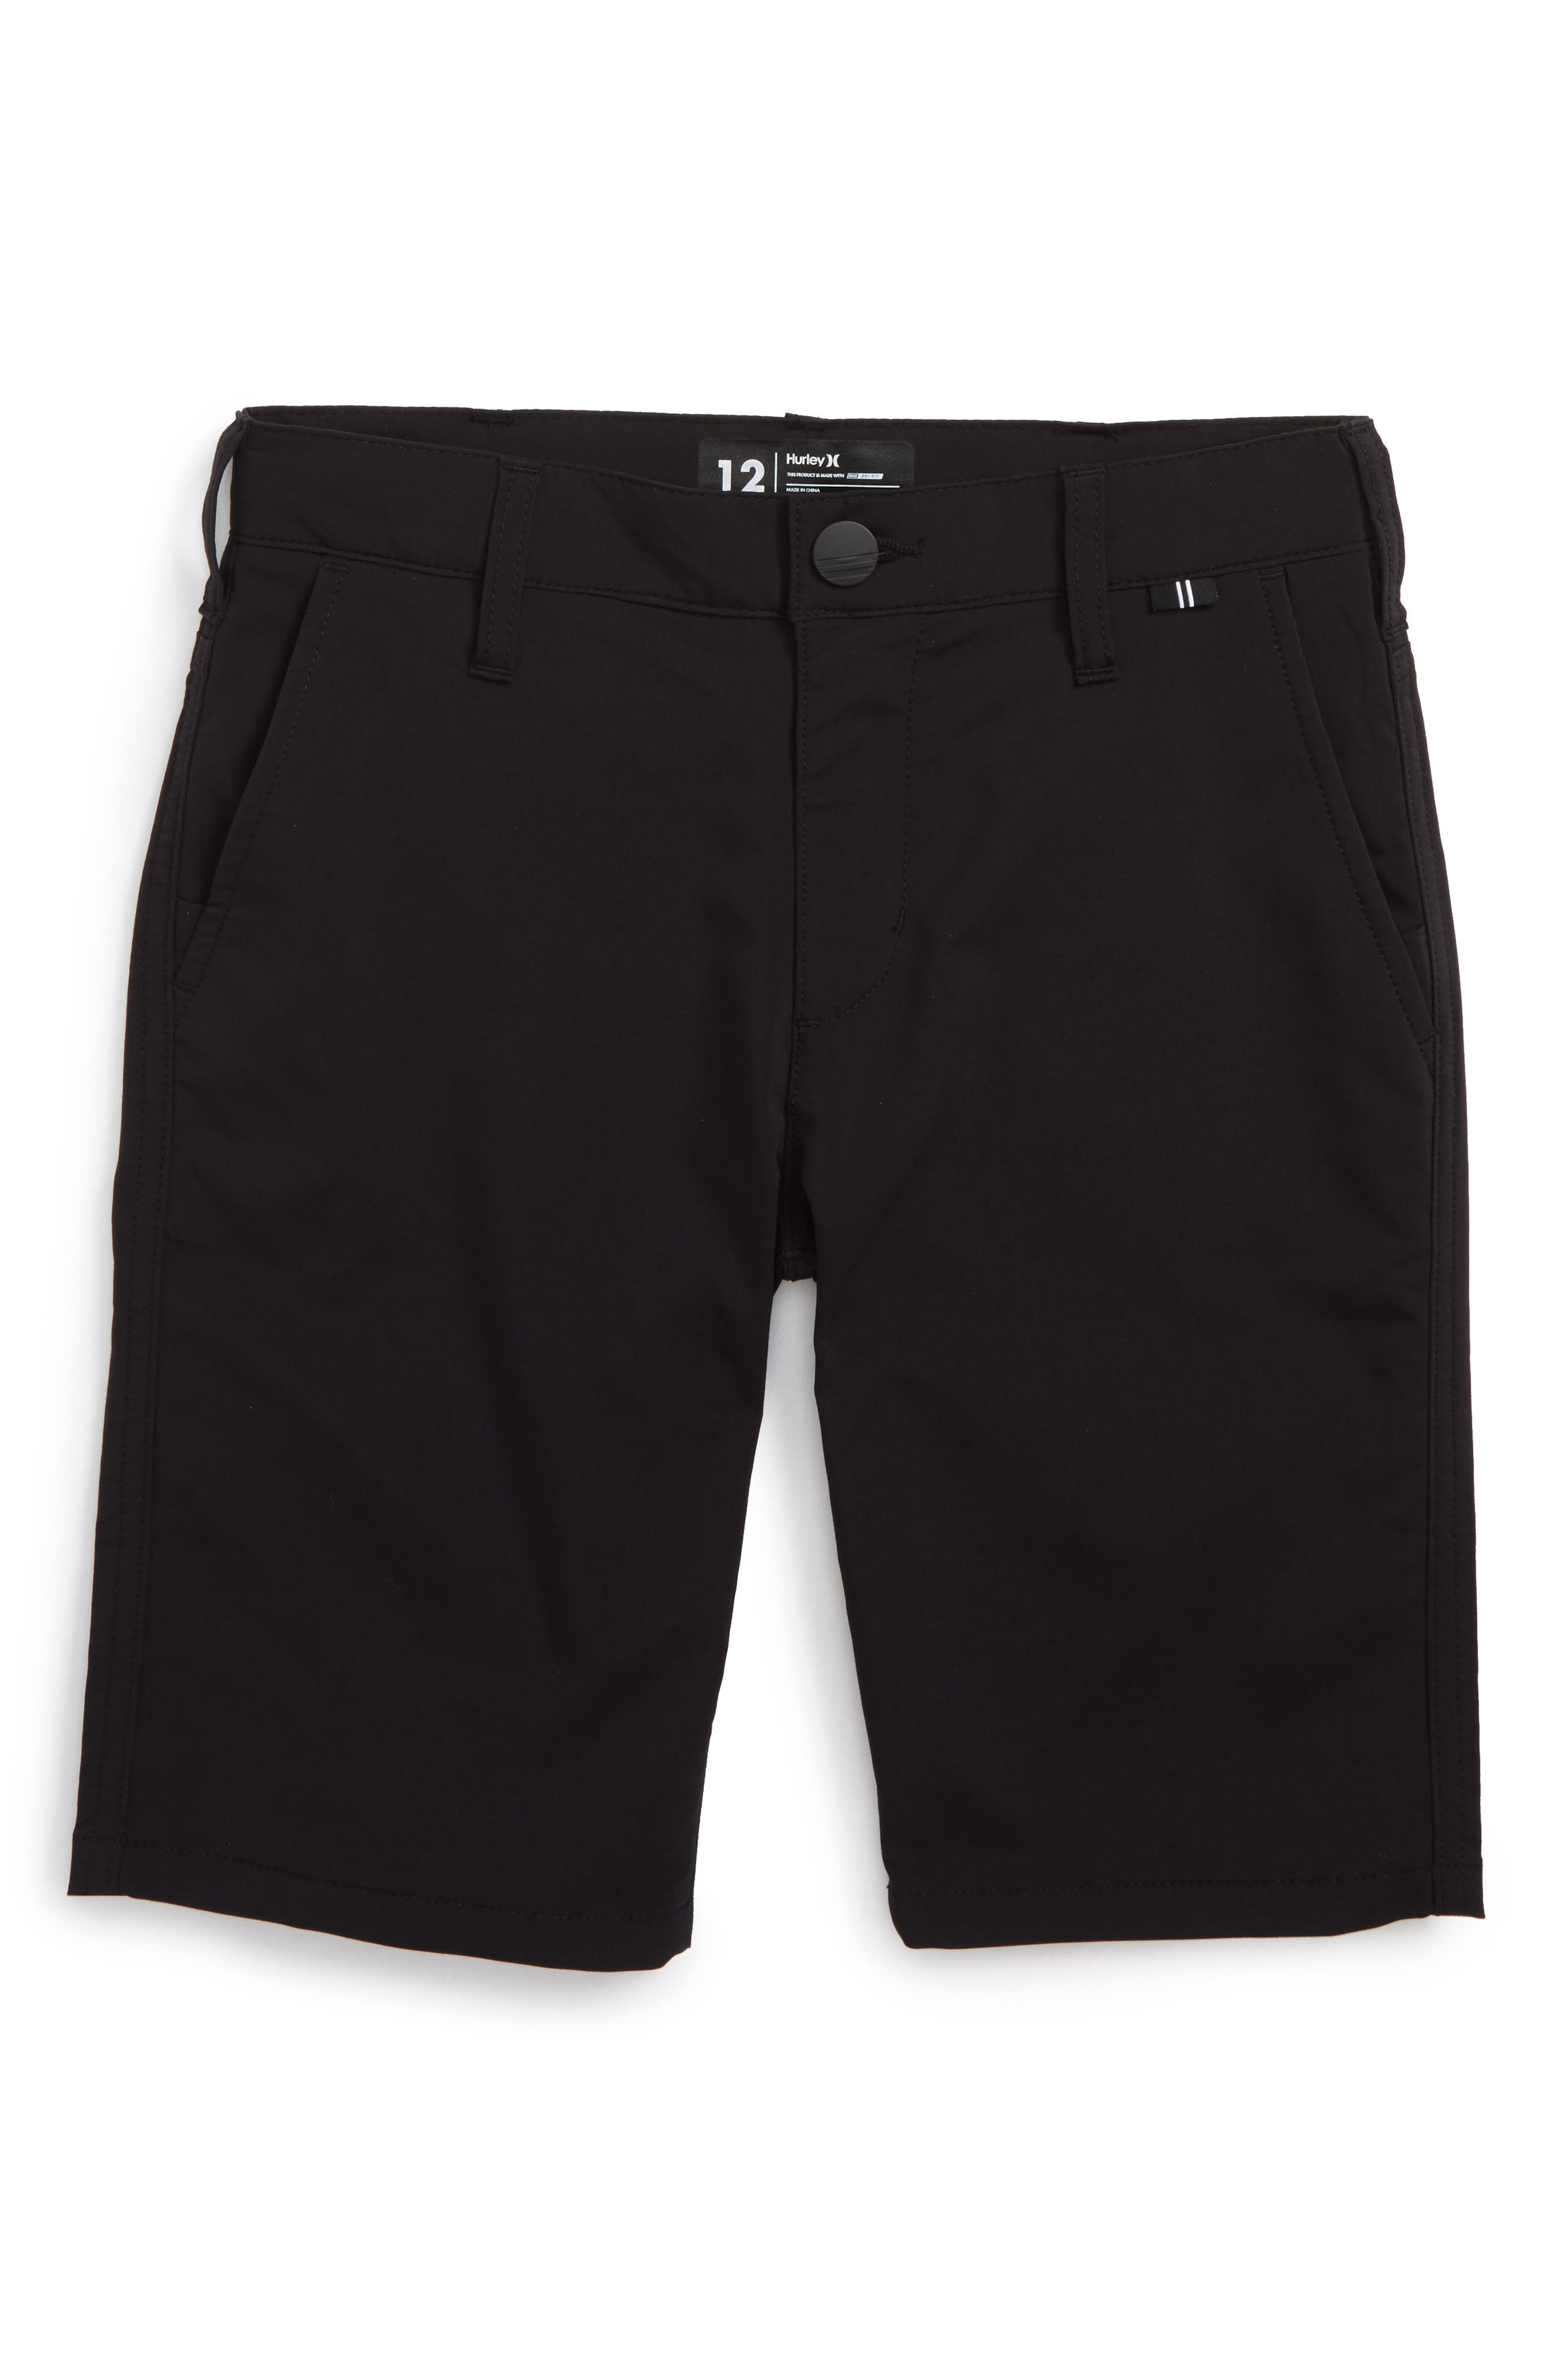 Main Image - Hurley Dri-FIT Chino Shorts (Big Boys)